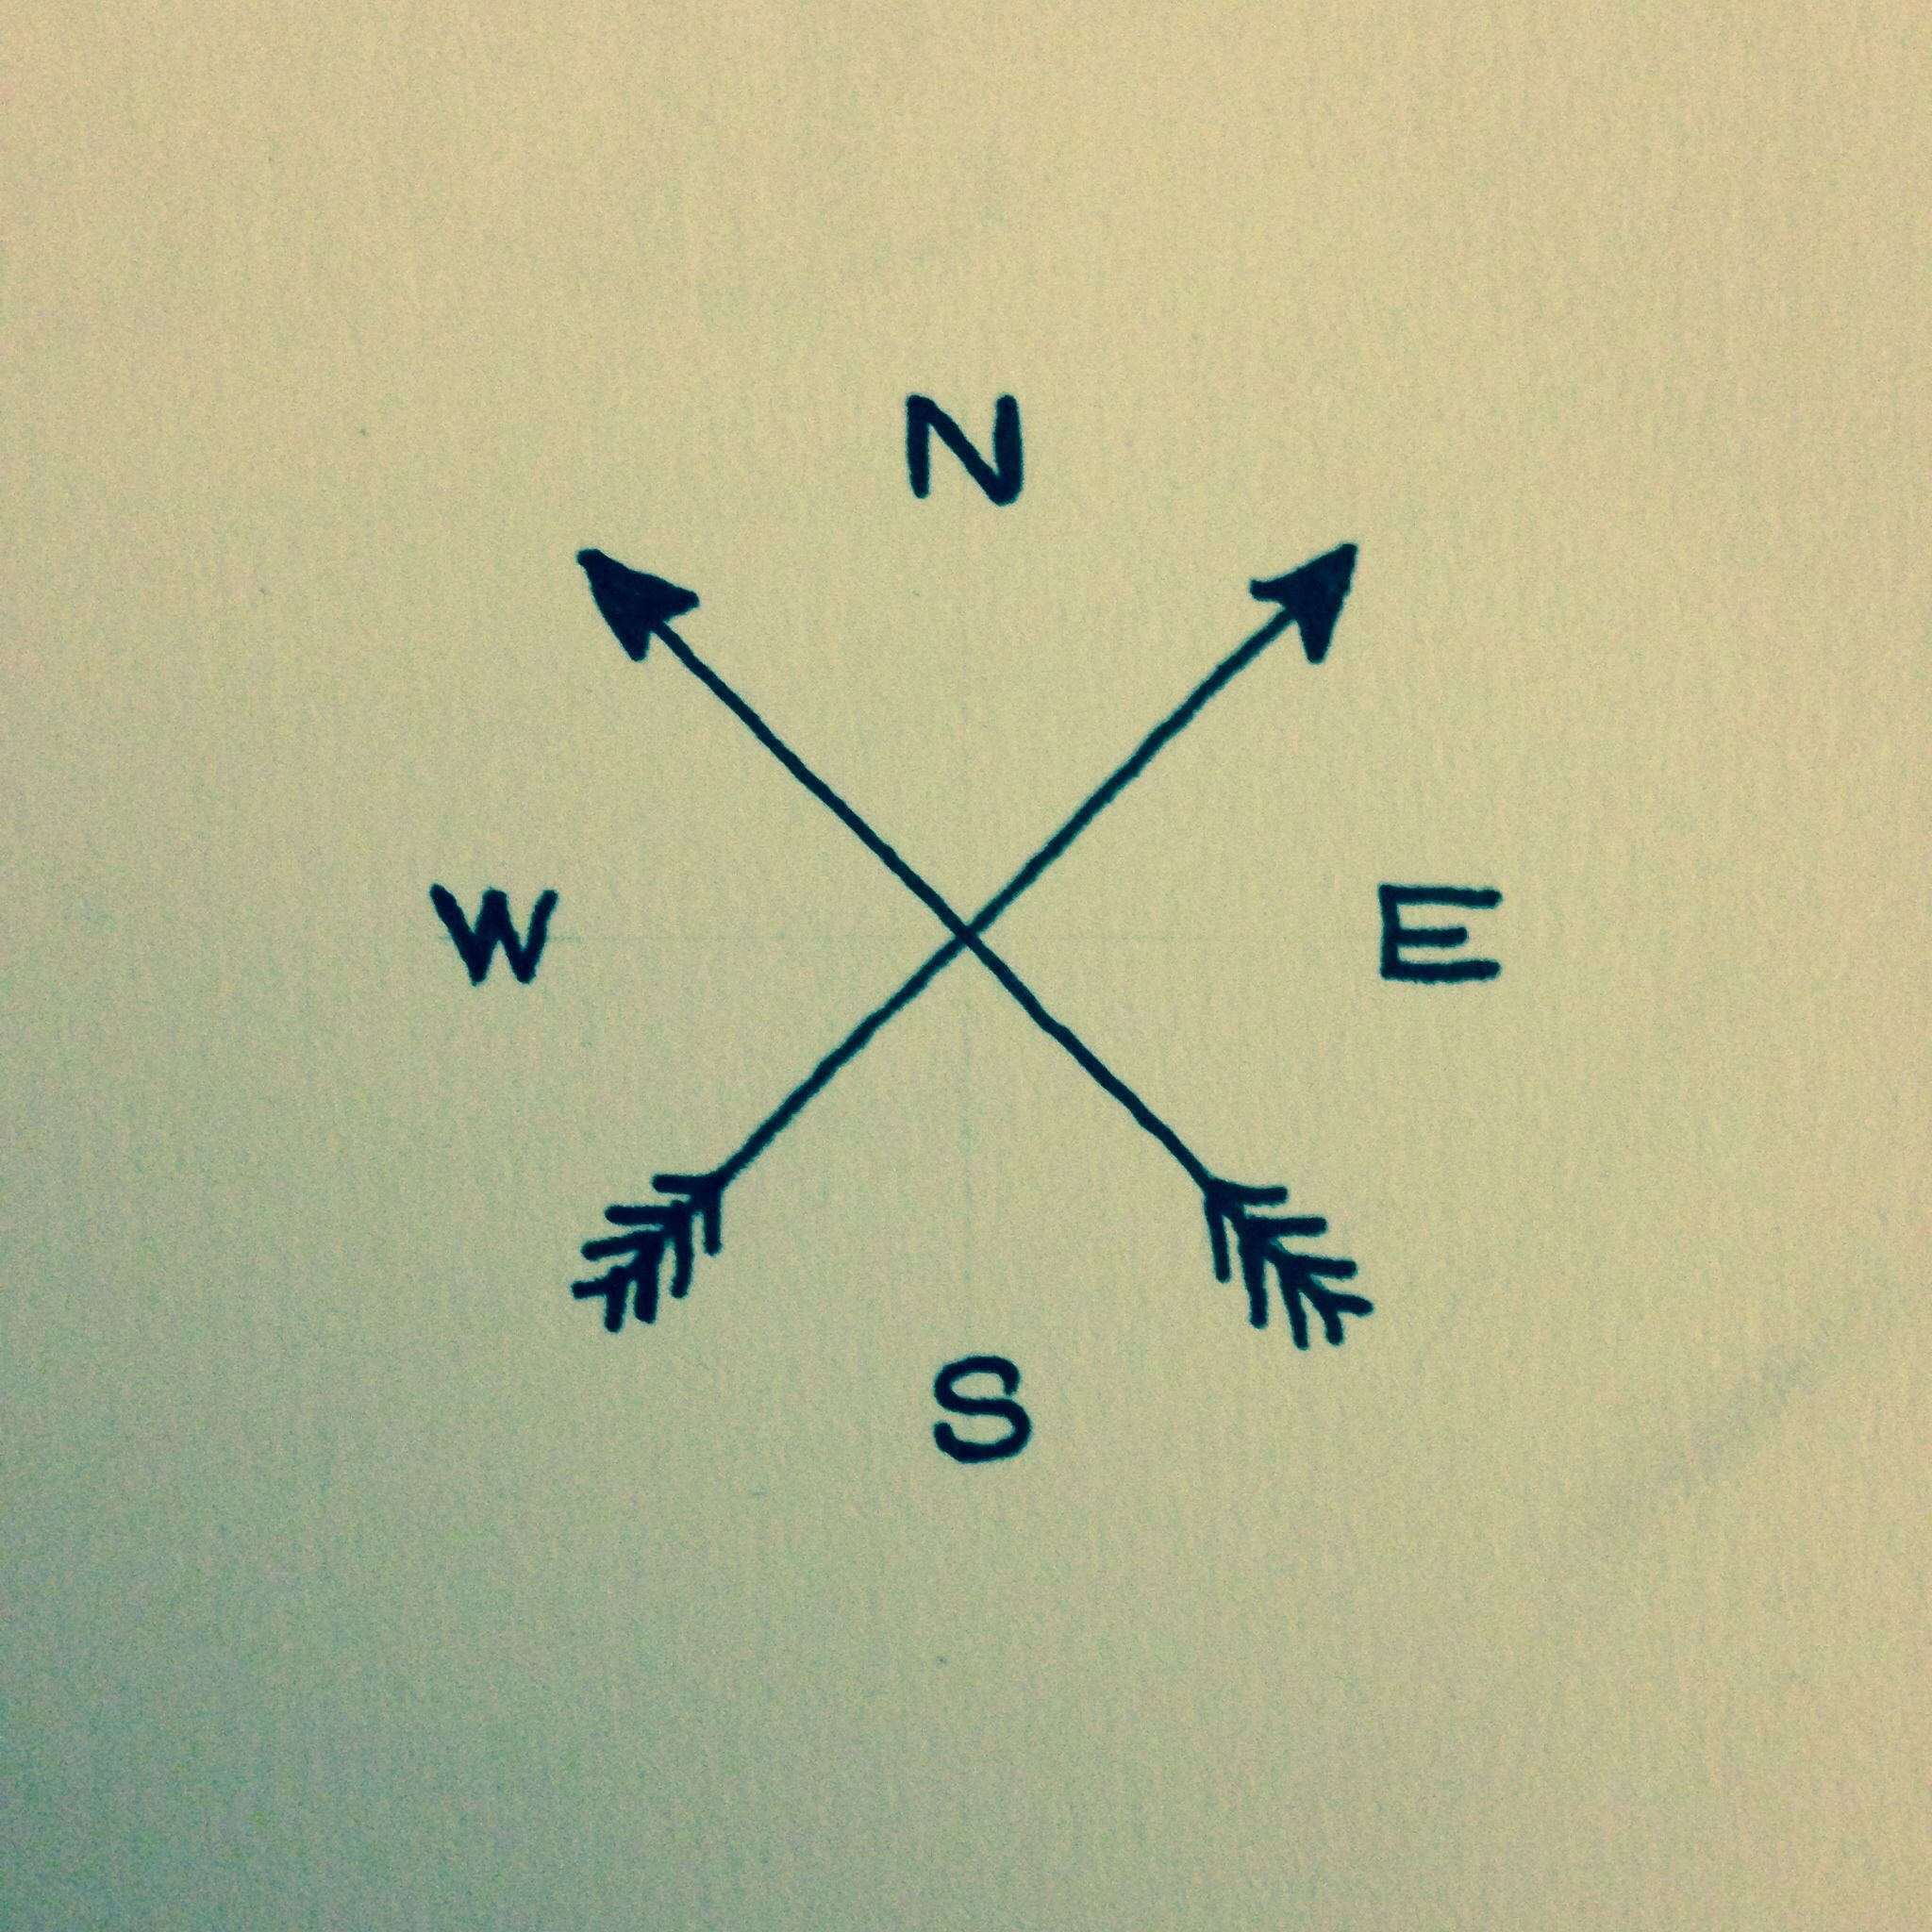 2048x2048 I Really Want A Simple Compass Tattoo Like This But I Have No Idea